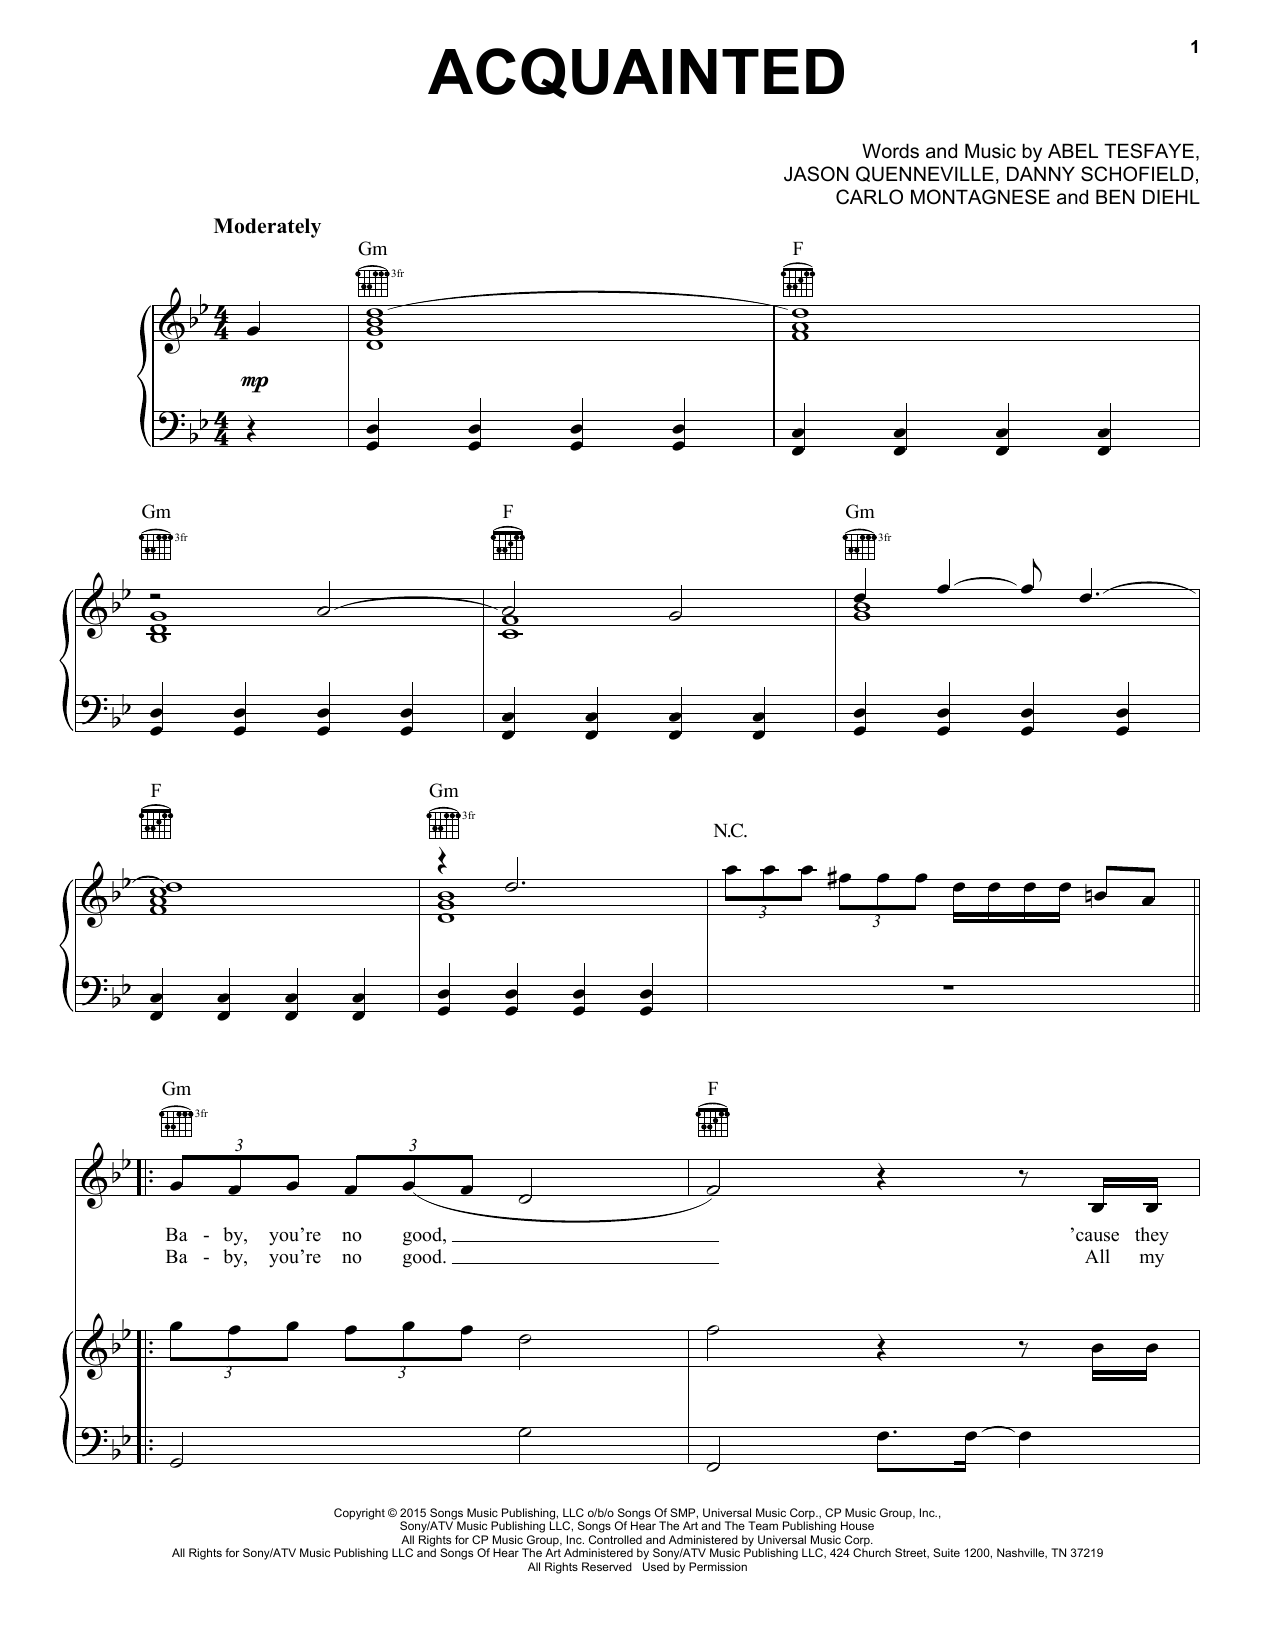 Acquainted Sheet Music